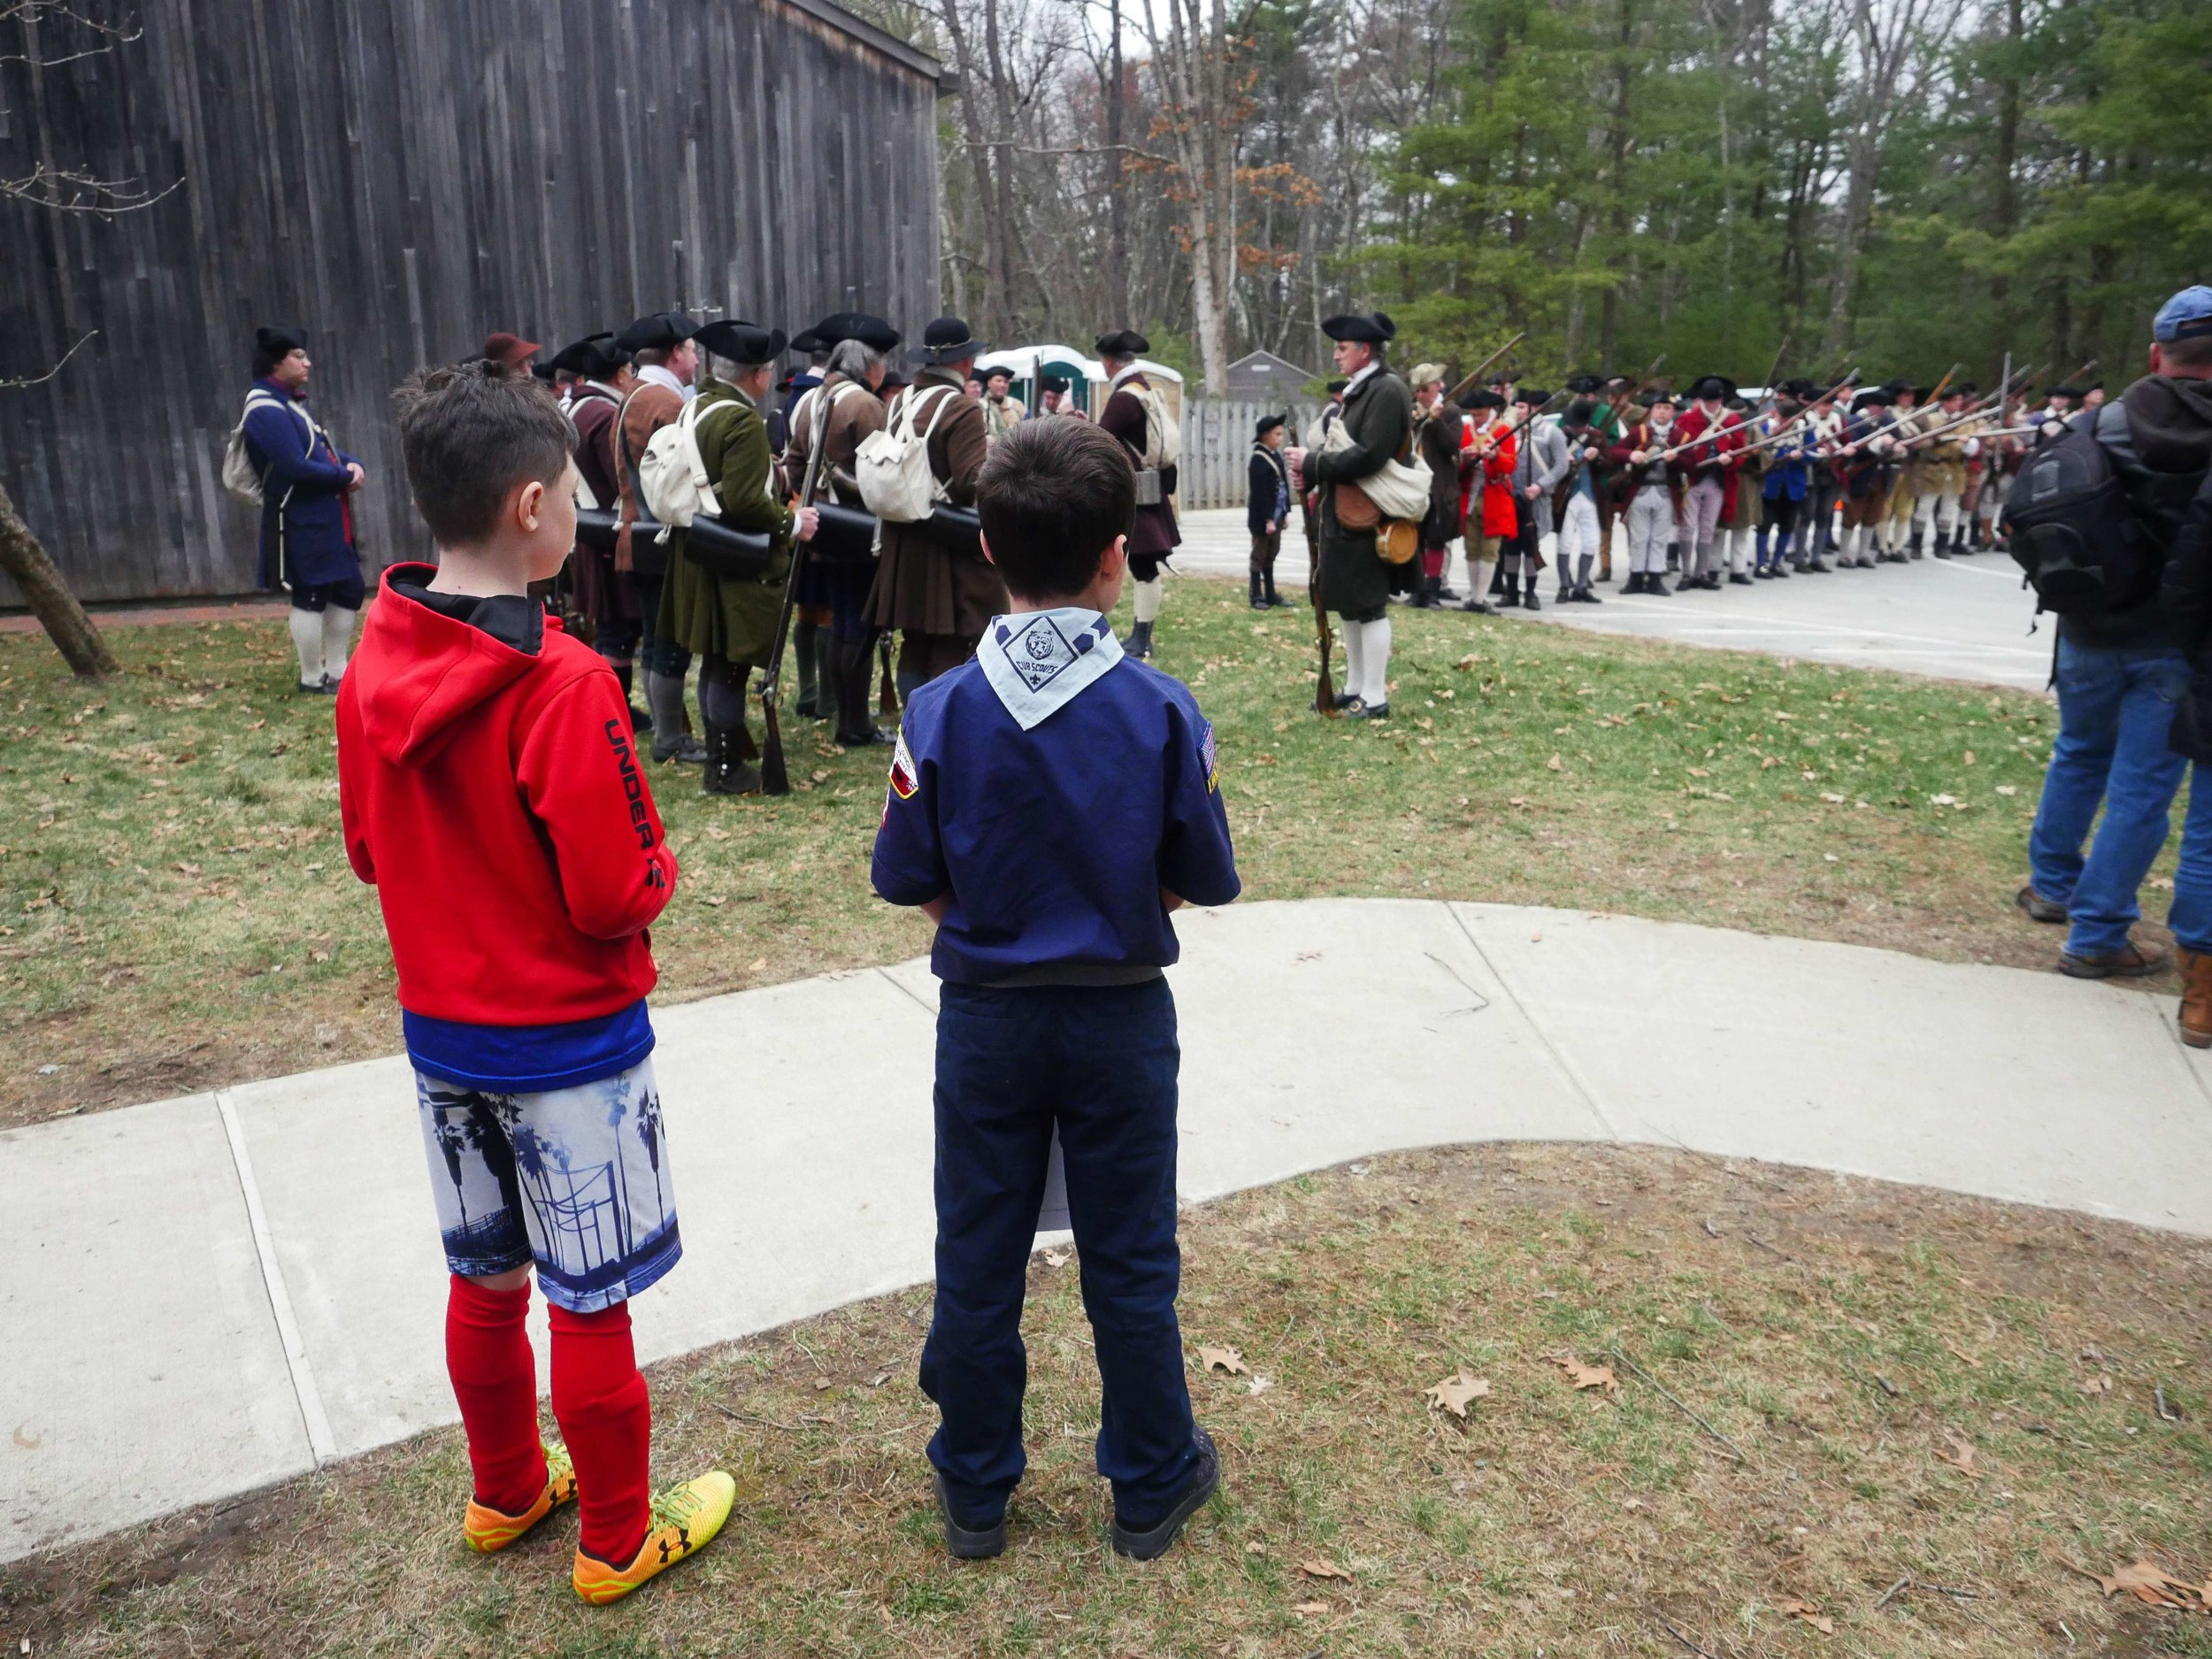 Lincoln, MA - April 14th, 2018 - Two young boy scouts look on as Hannes Klein rallies the troops for the 243rd anniversary of the Battles of Lexington and Concord. Klein says that the battle still garners a large crowd even in the inclement of weather.